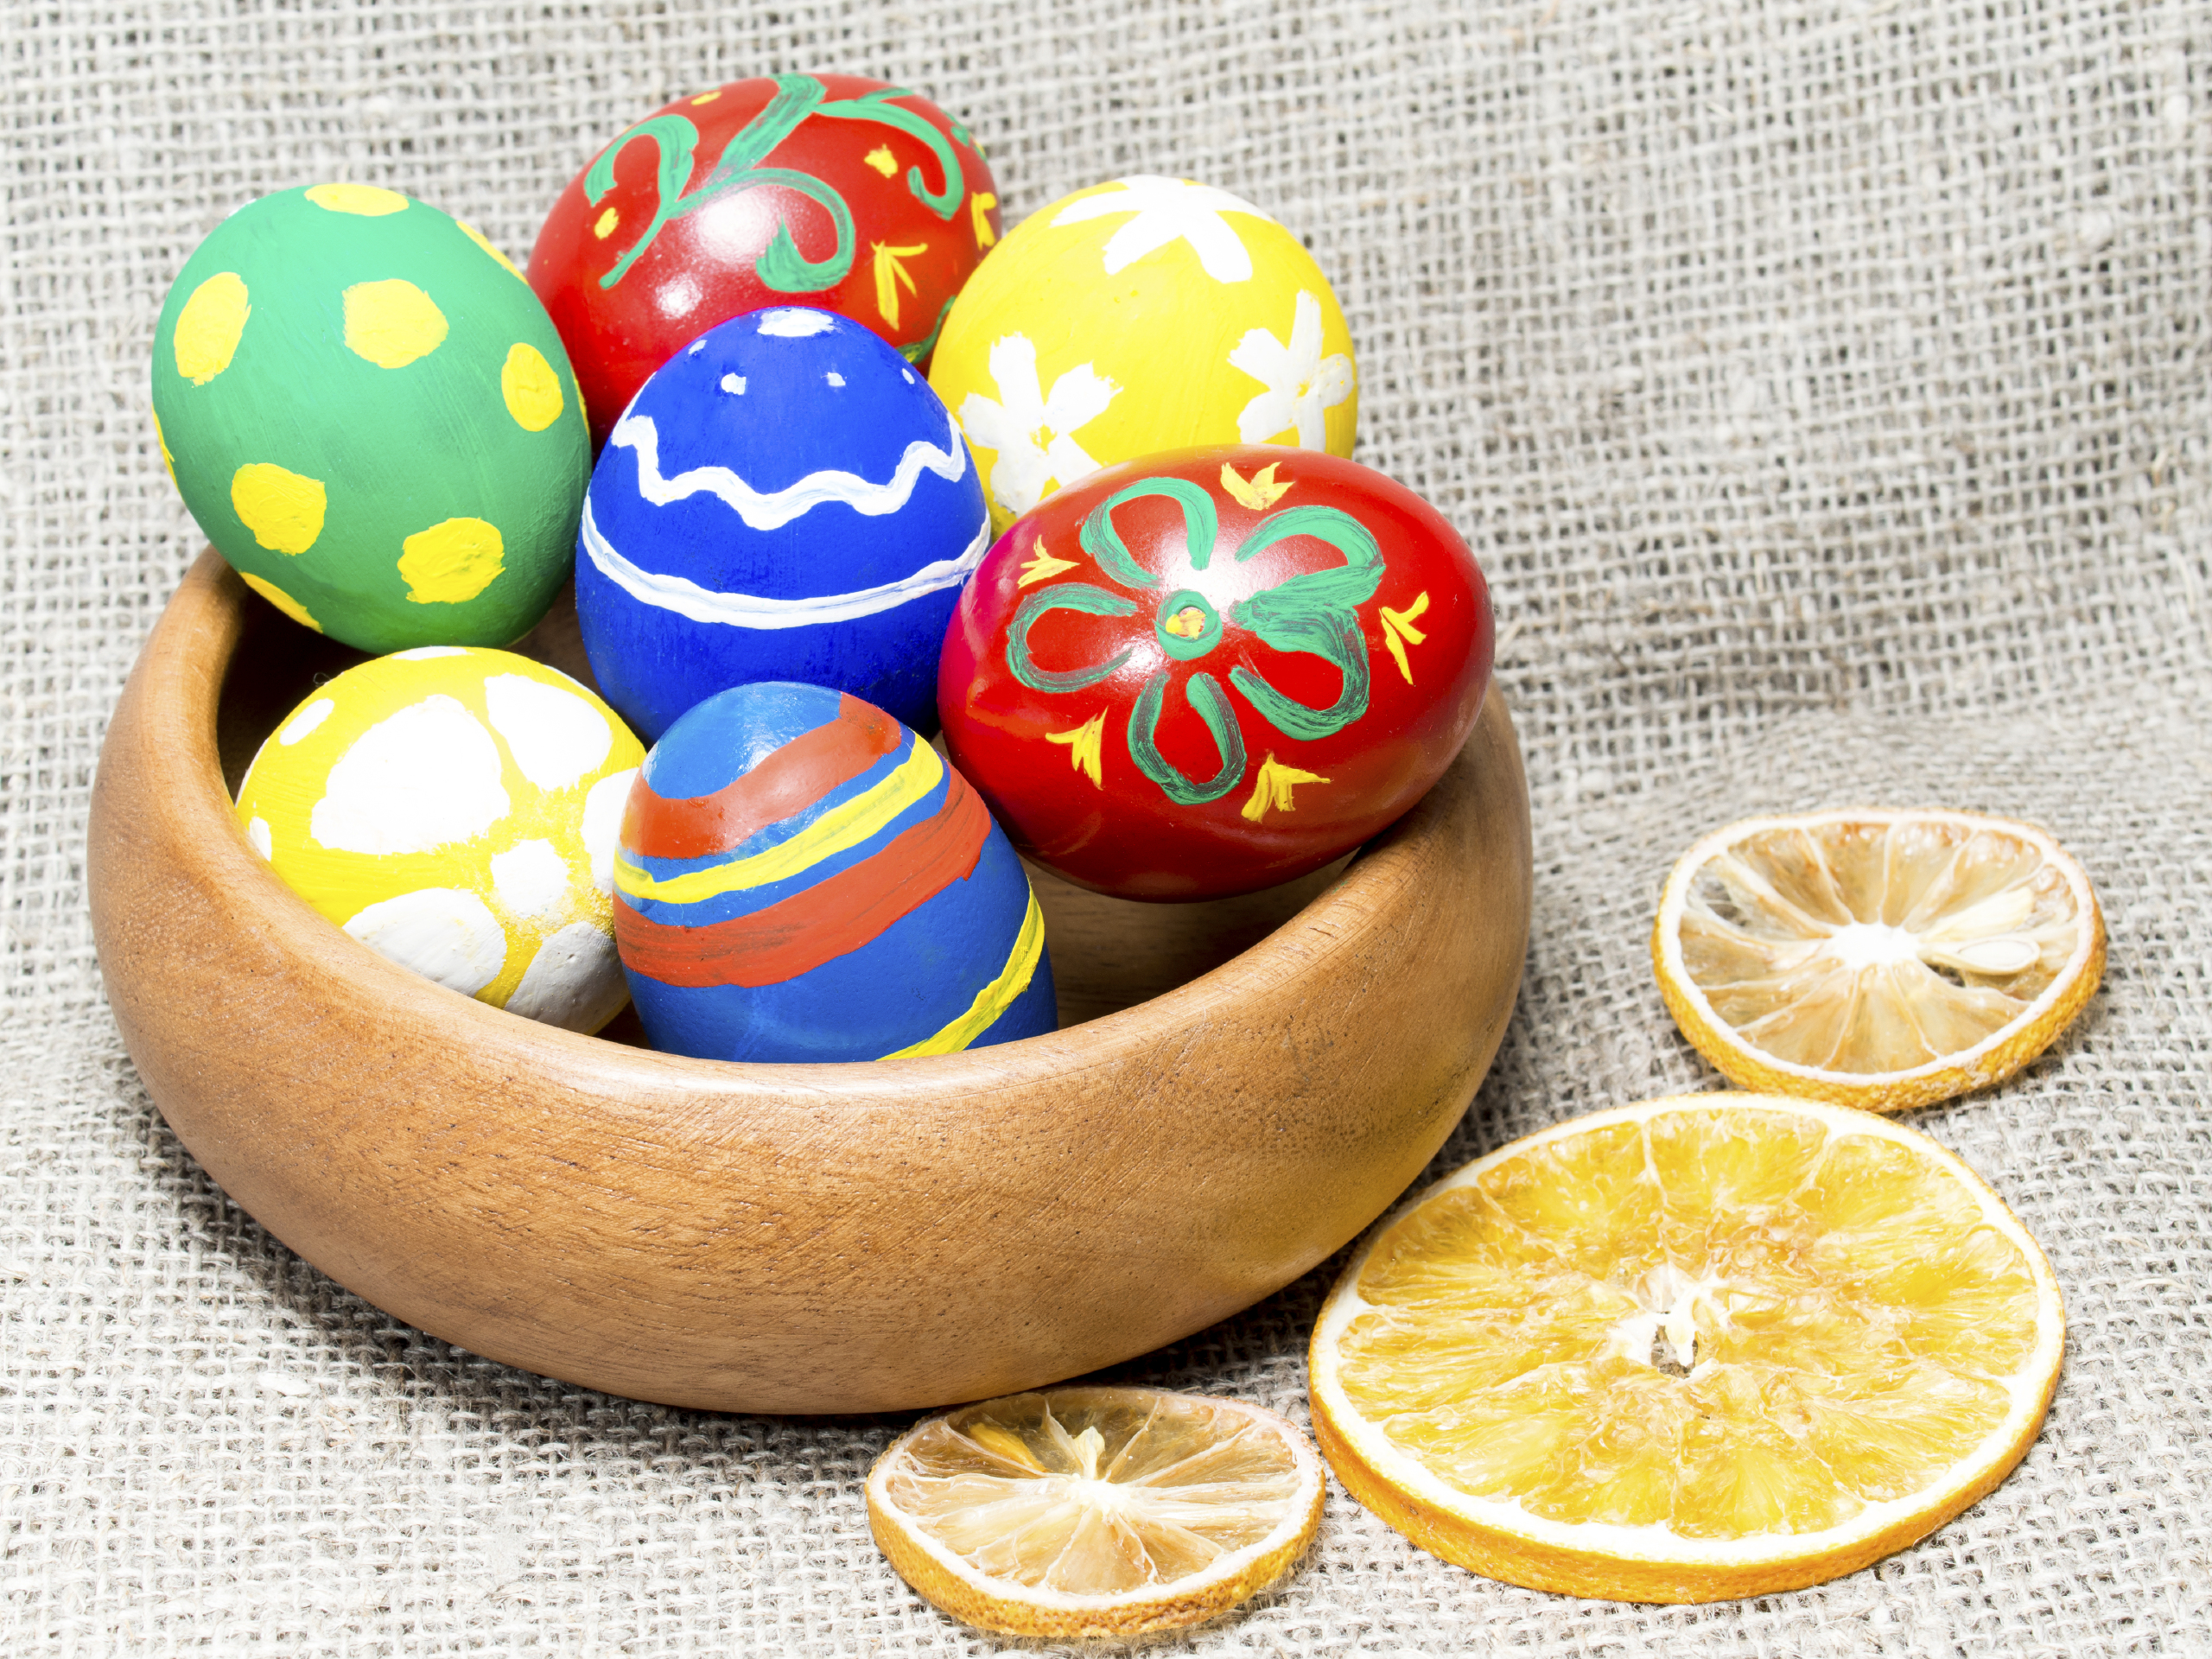 Come decorare le uova di pasqua - Decorare uova di pasqua ...